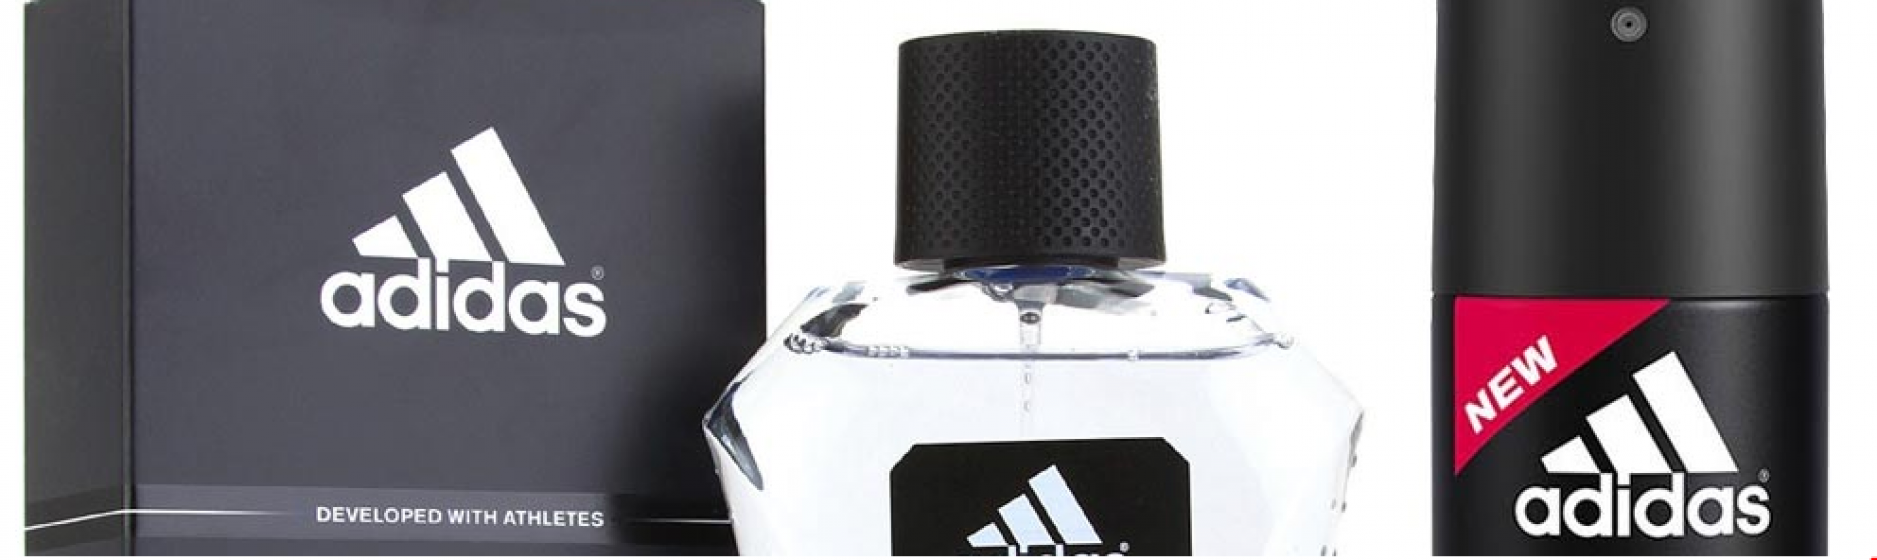 10 Best Adidas Colognes Reviews and Buying guide